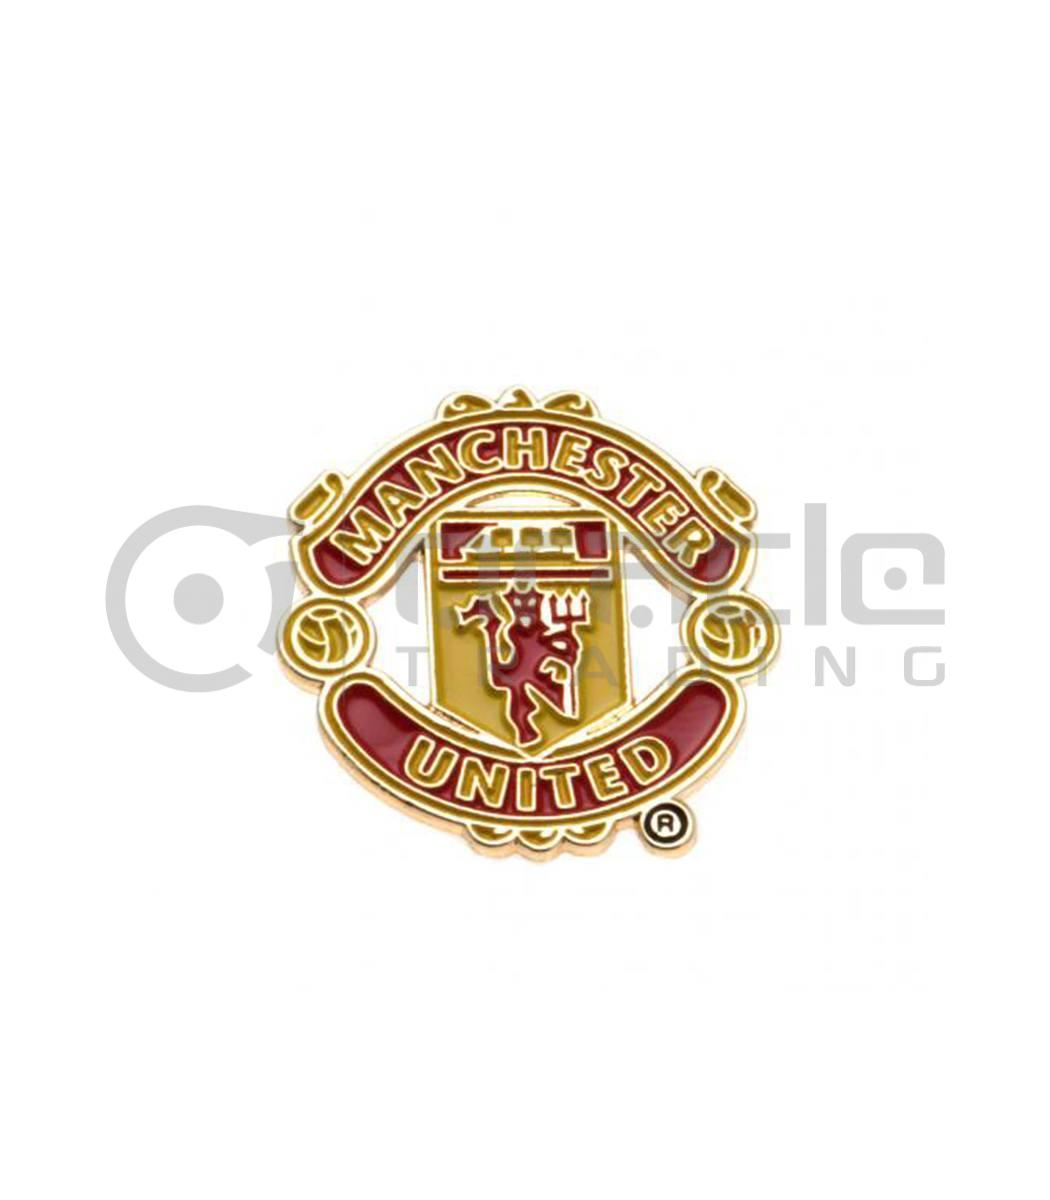 Manchester United Crest Pin Oracle Trading Inc